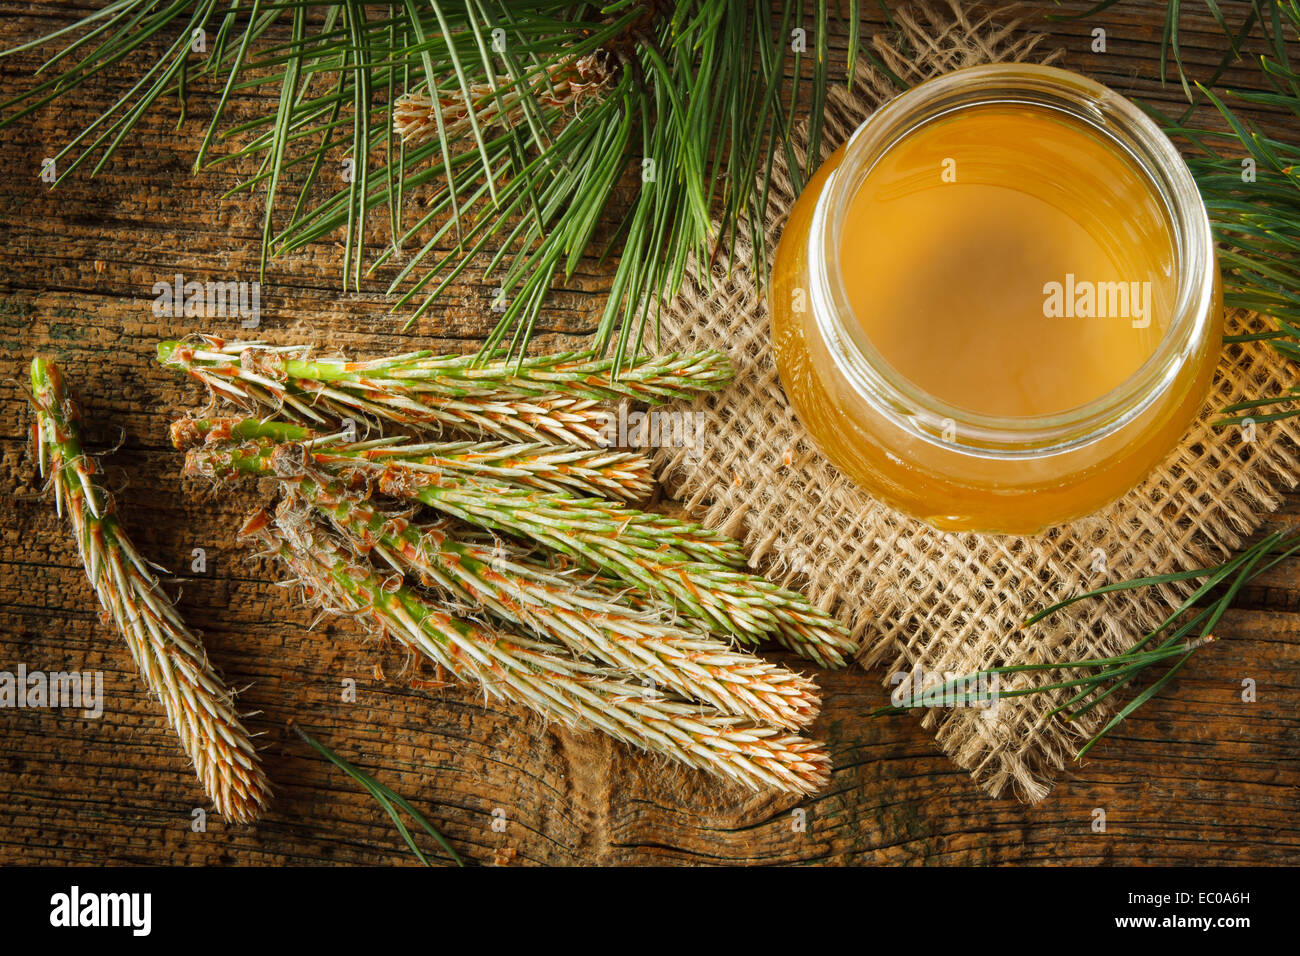 Homemade syrup made from green young pine buds and sugar - Stock Image